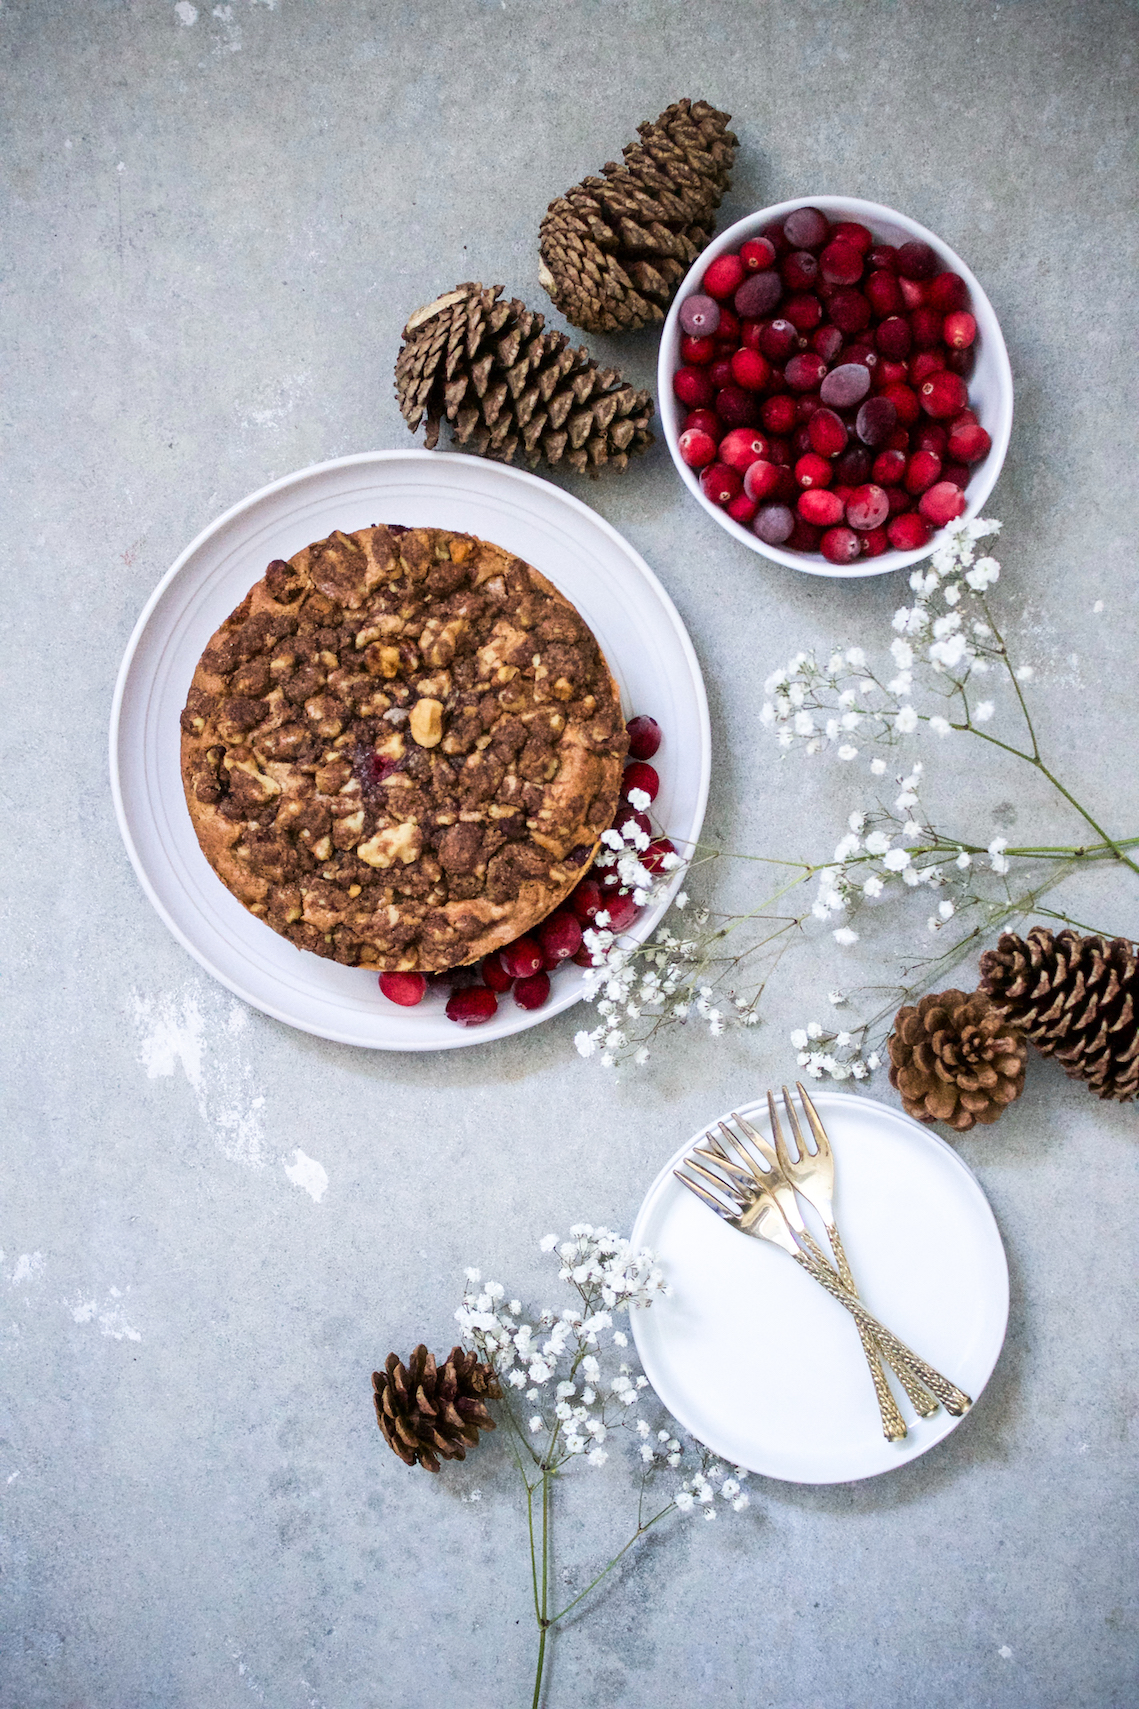 Cranberry coffee cake 1.jpg